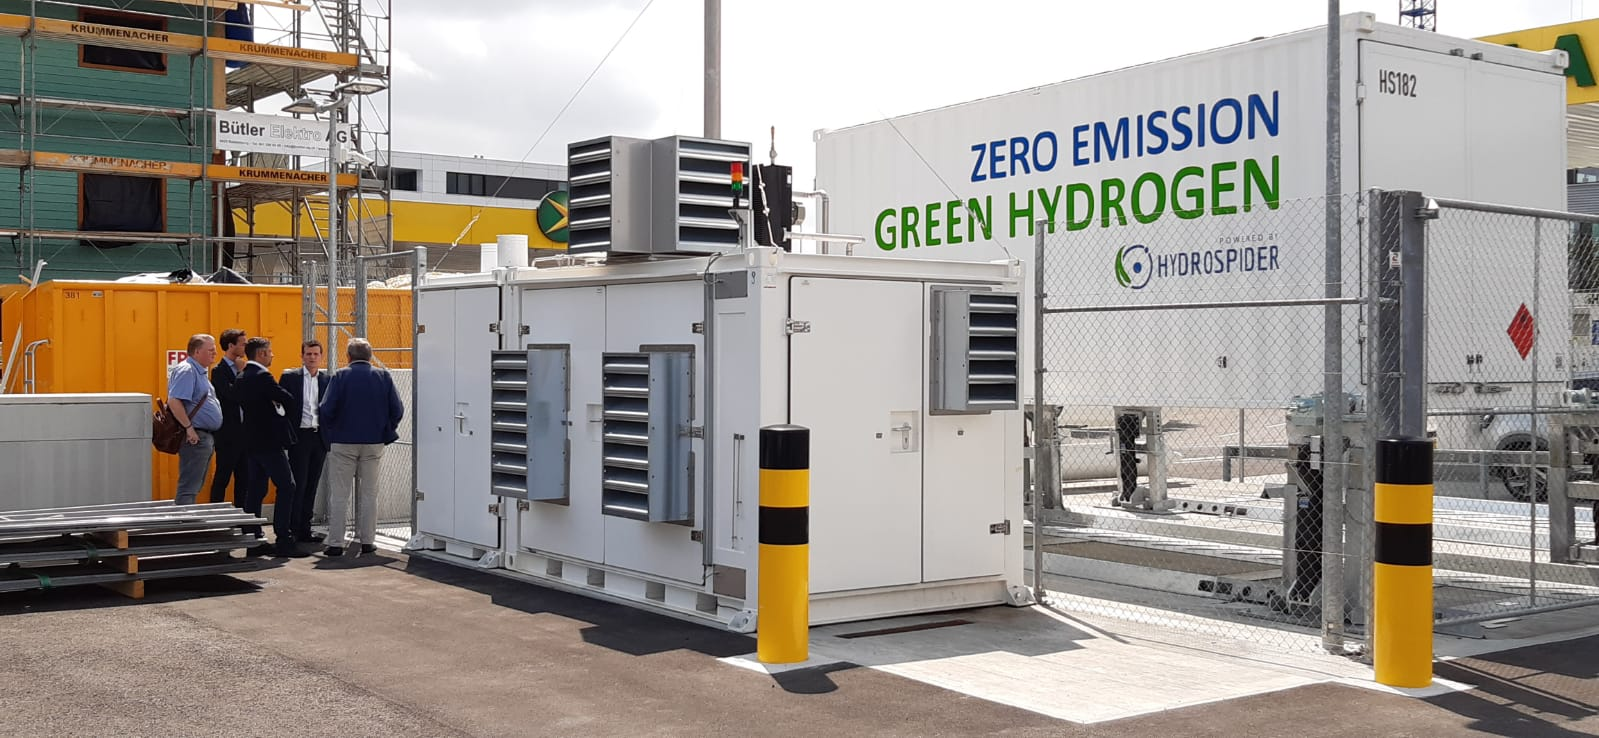 Fuel Cells Works, Hydrogen Mobility: Alfreider visits H2 Energy, a Model Project for decarbonisation in Switzerland